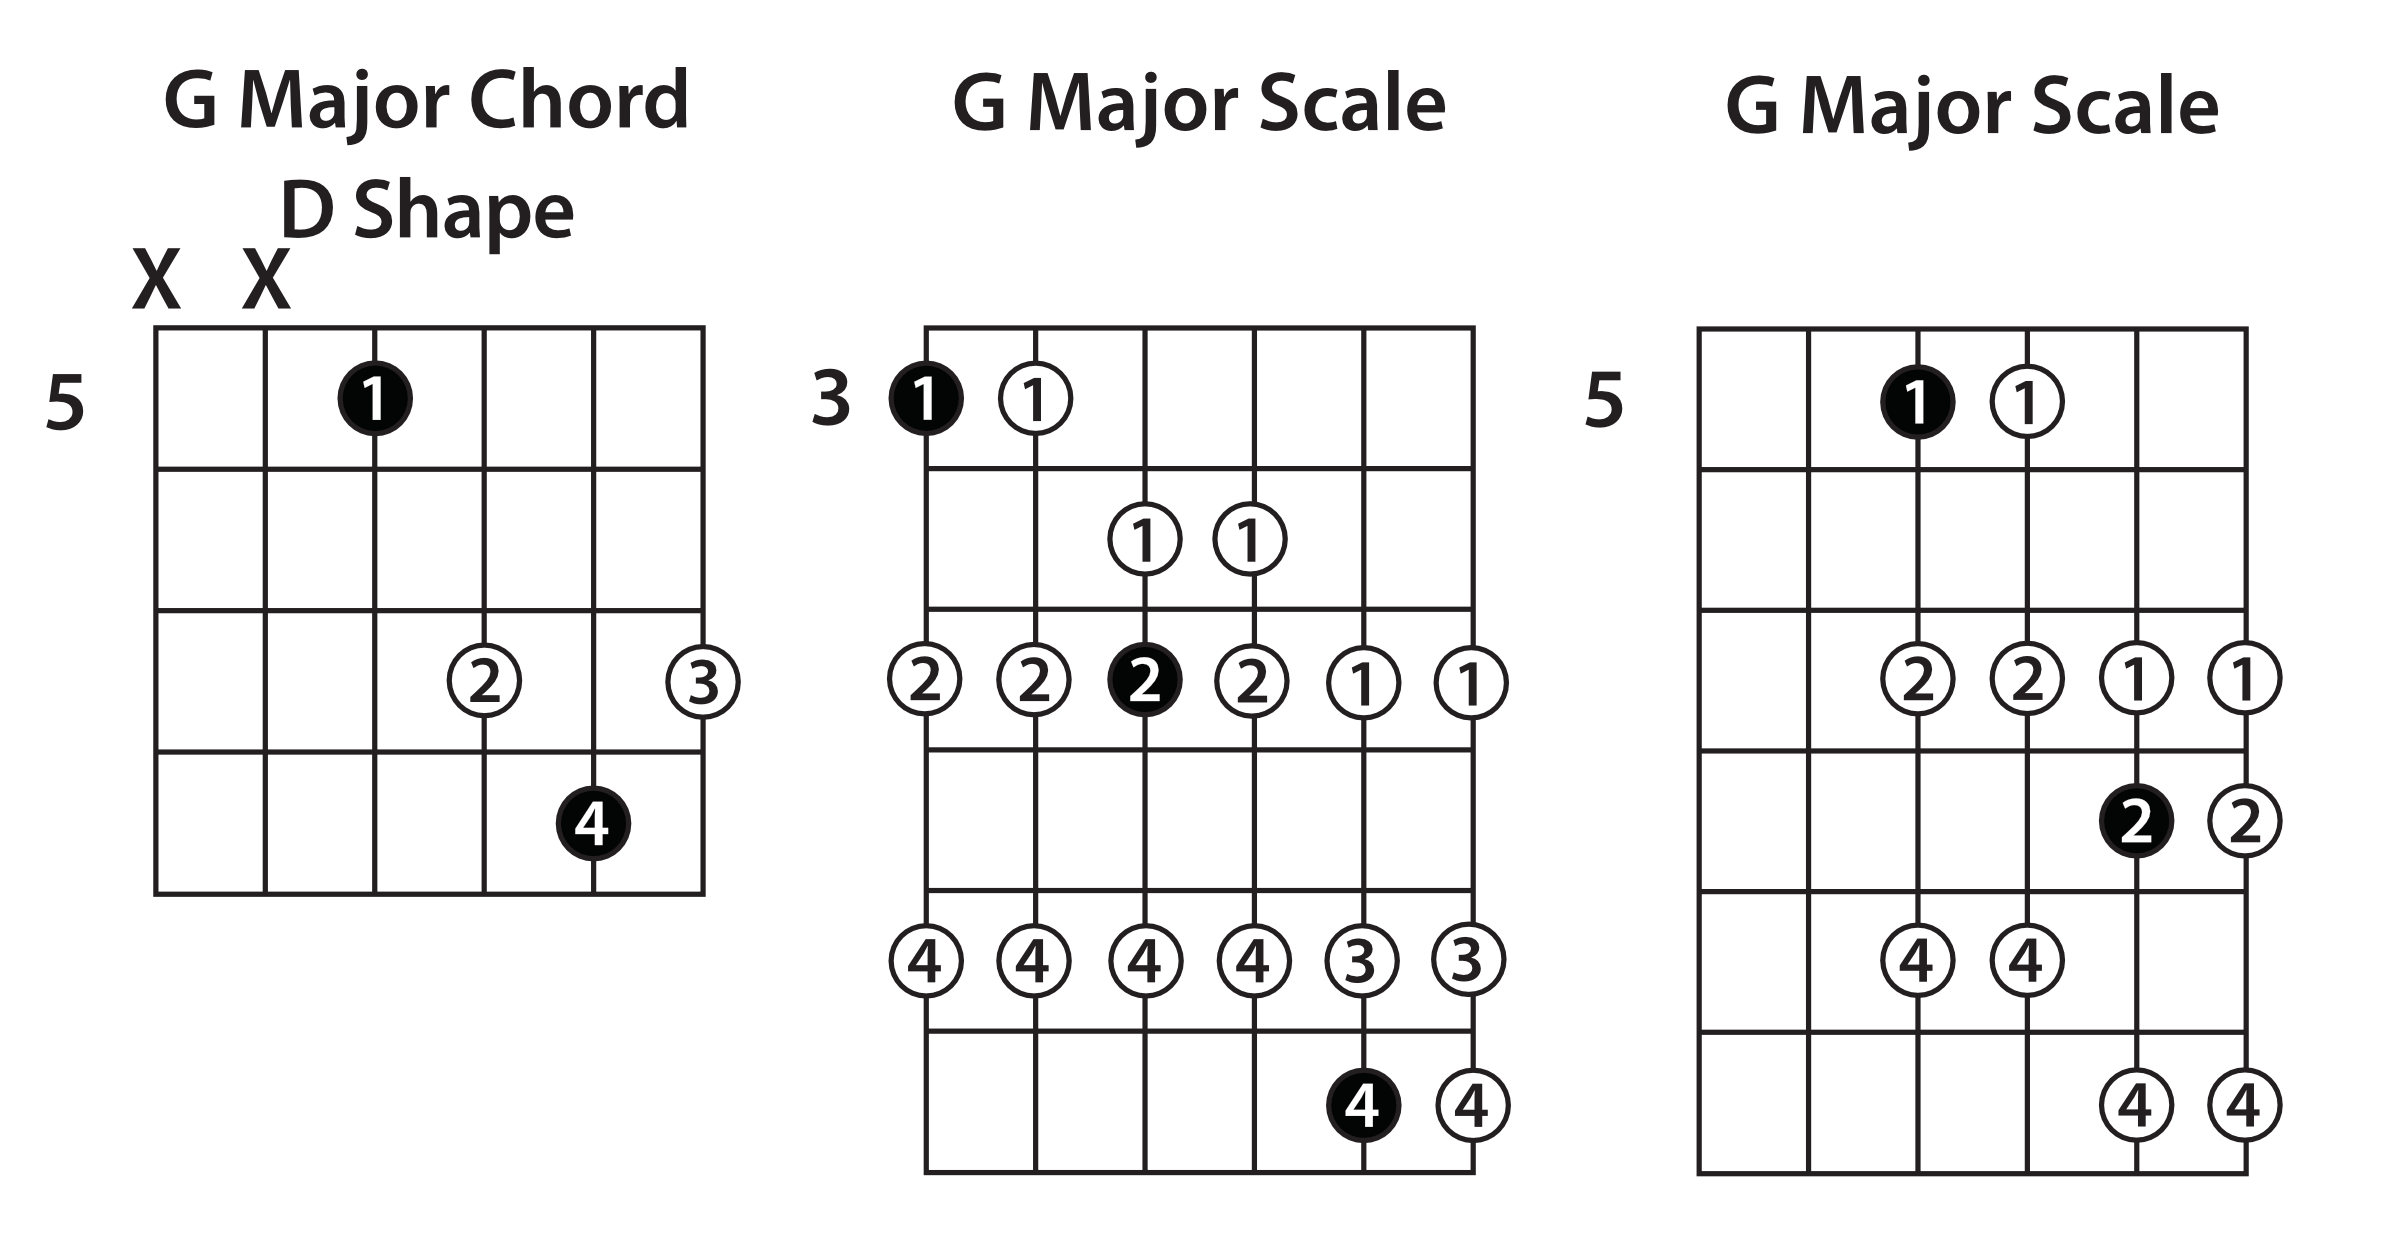 Double Your Fretboard Coverage